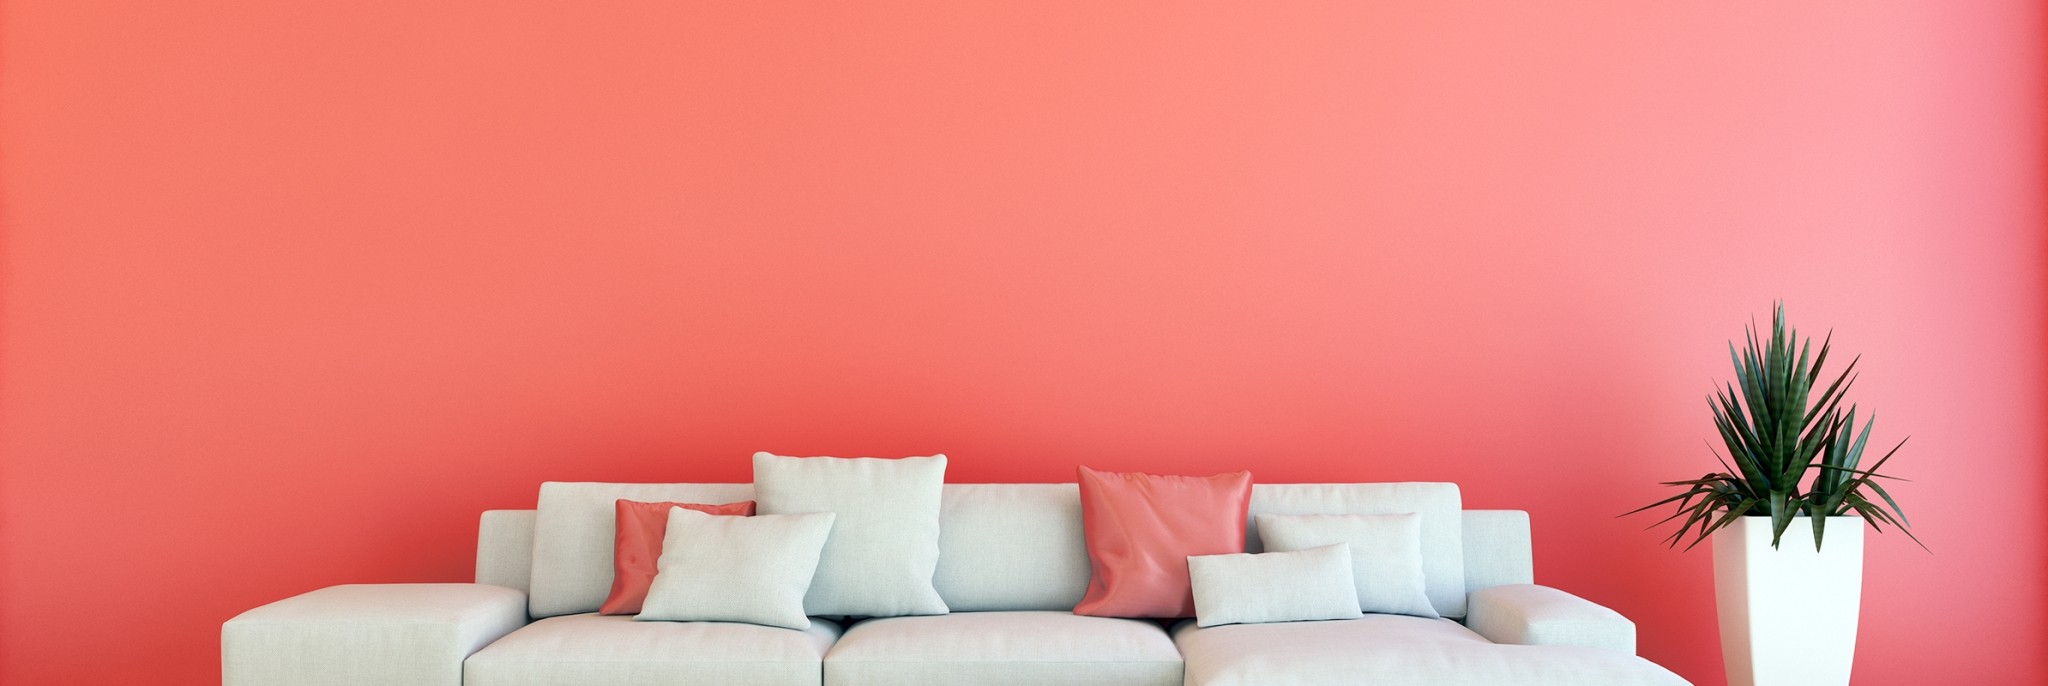 Upgrade Your Home with the Hue Spreading Optimism Everywhere